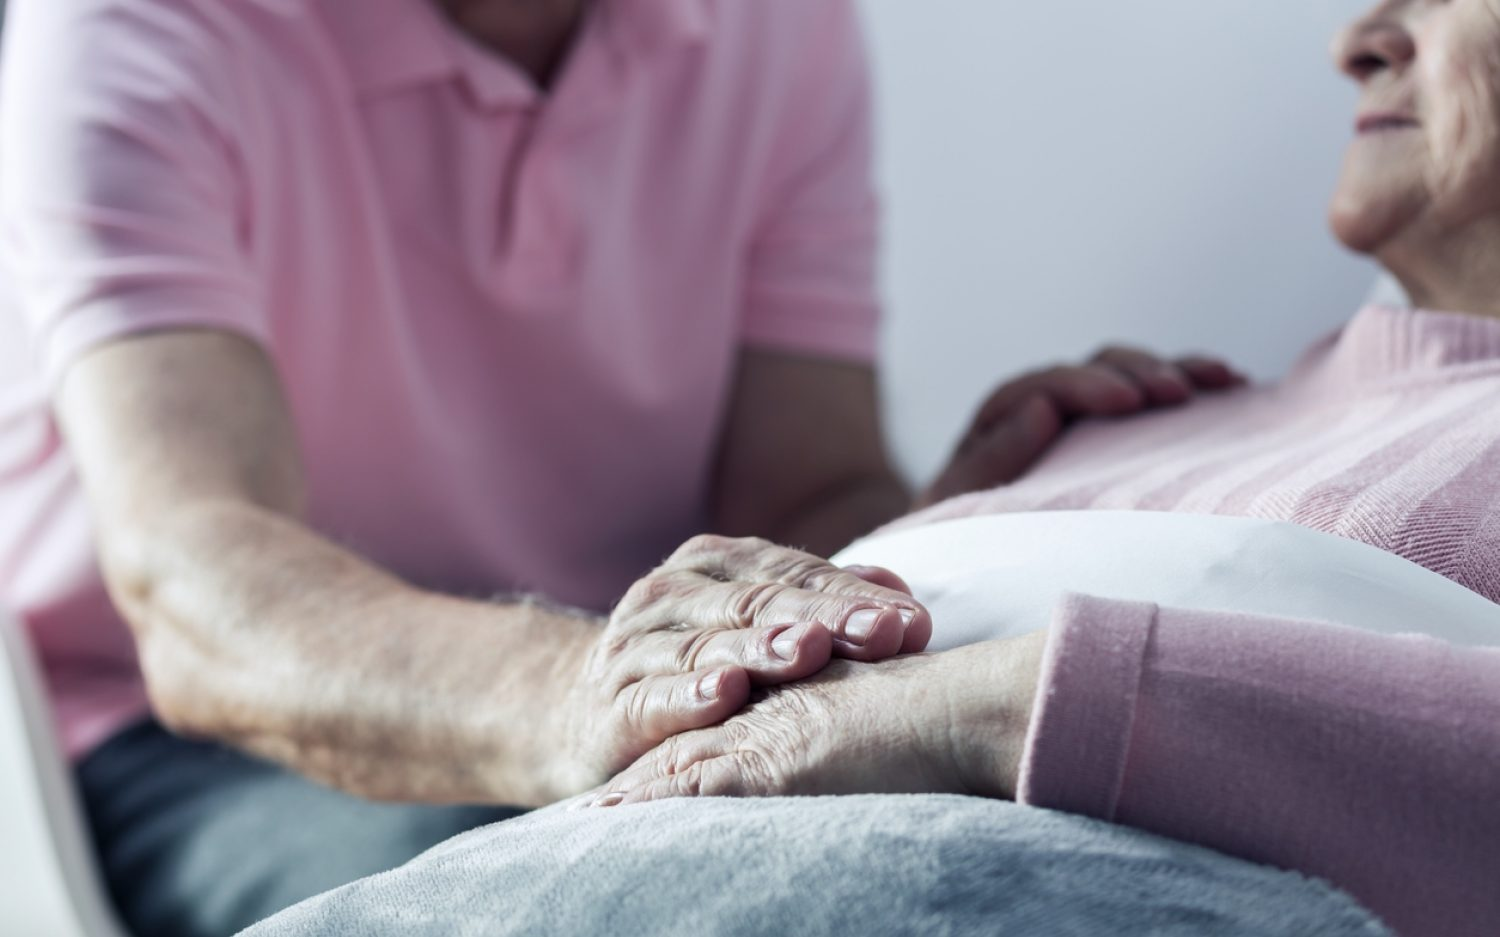 U.S. doctors take official stance against euthanasia